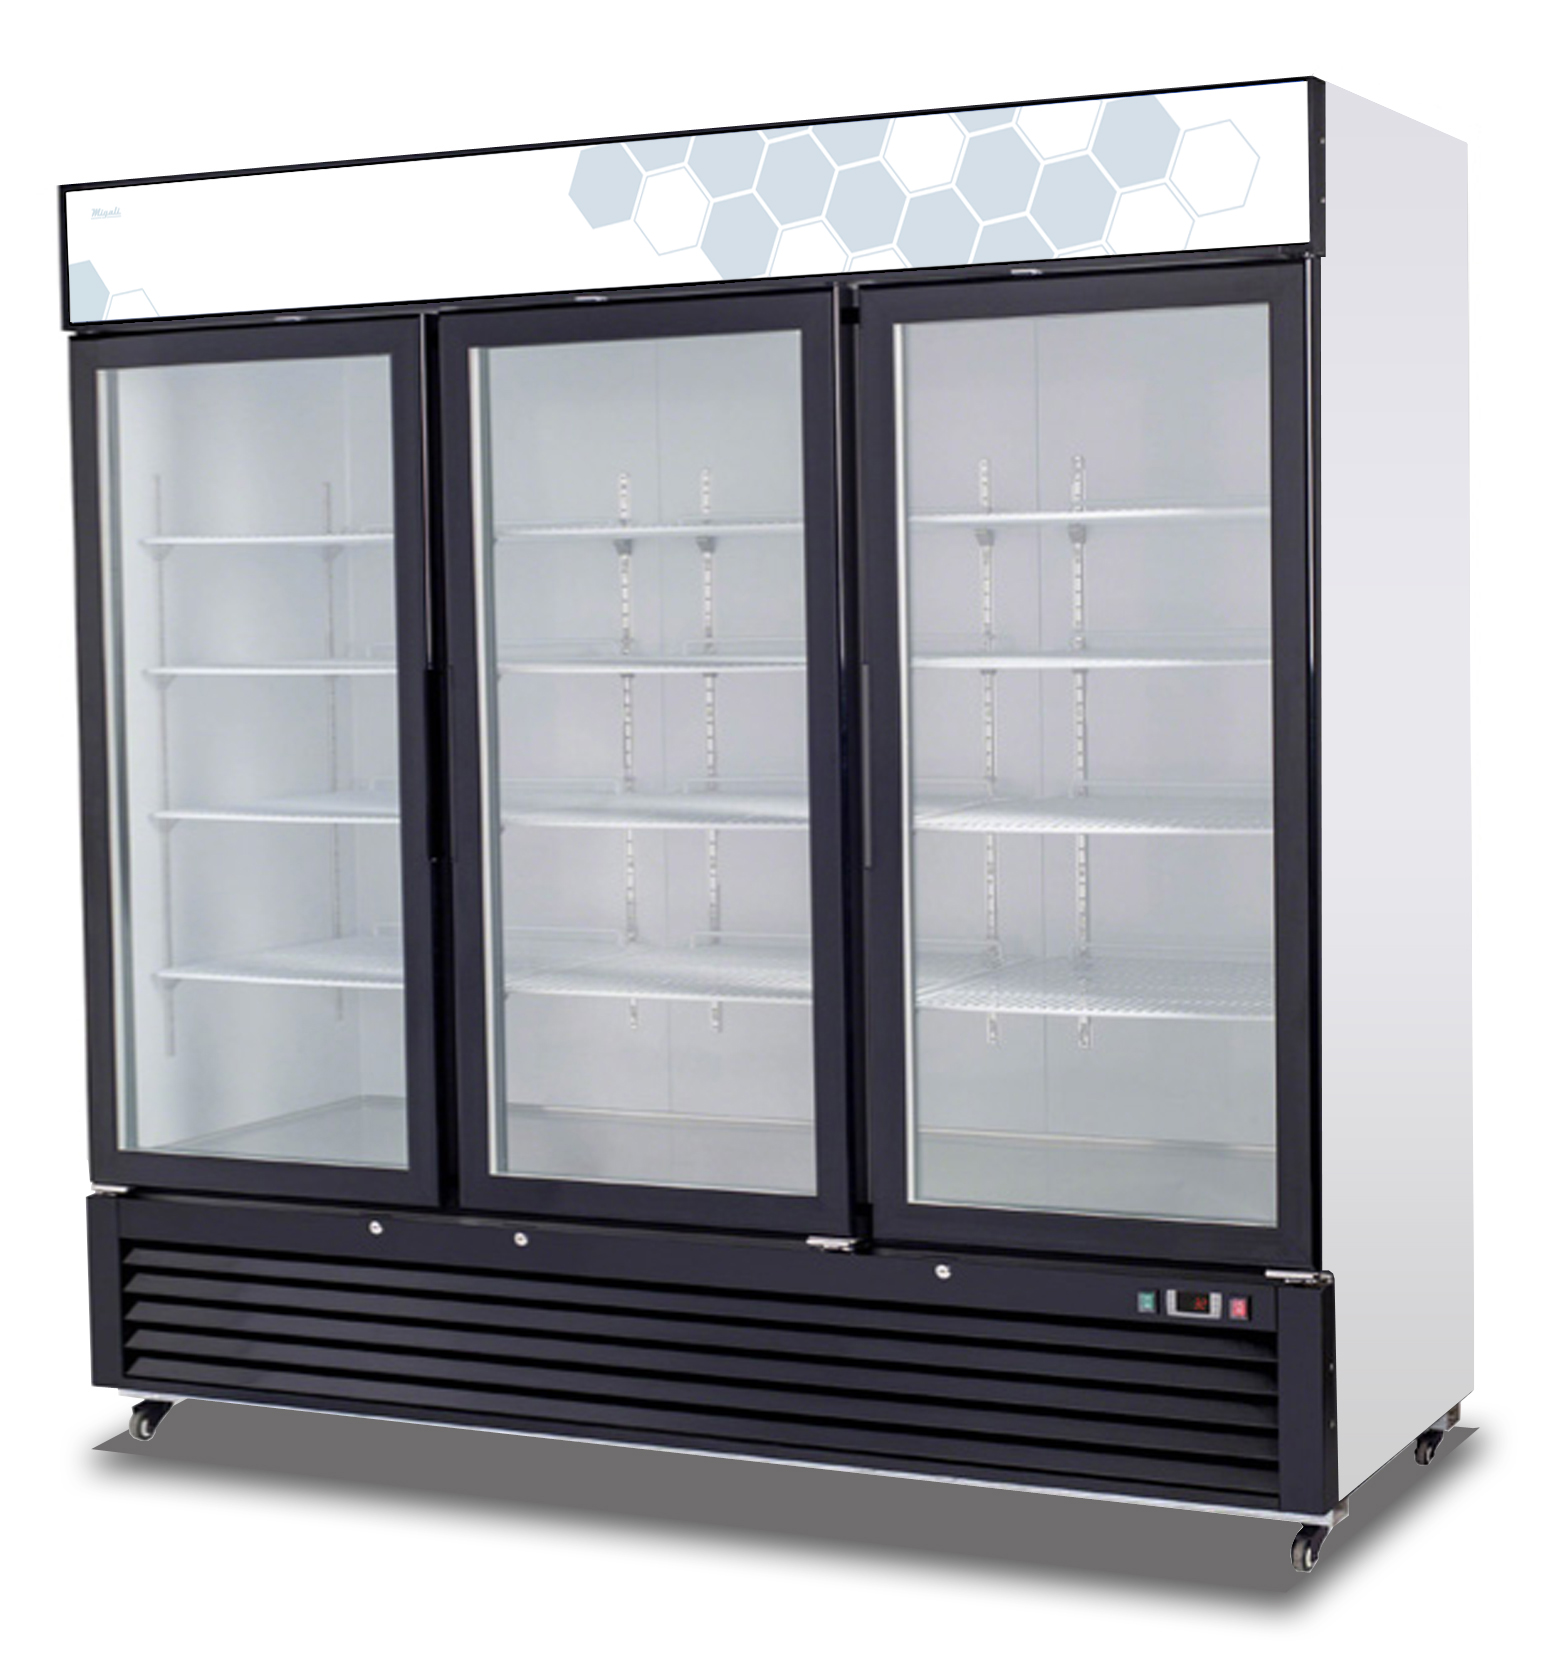 Migali C 72rm Ss Reach In Refrigerator Three Hinged Glass Doors A1